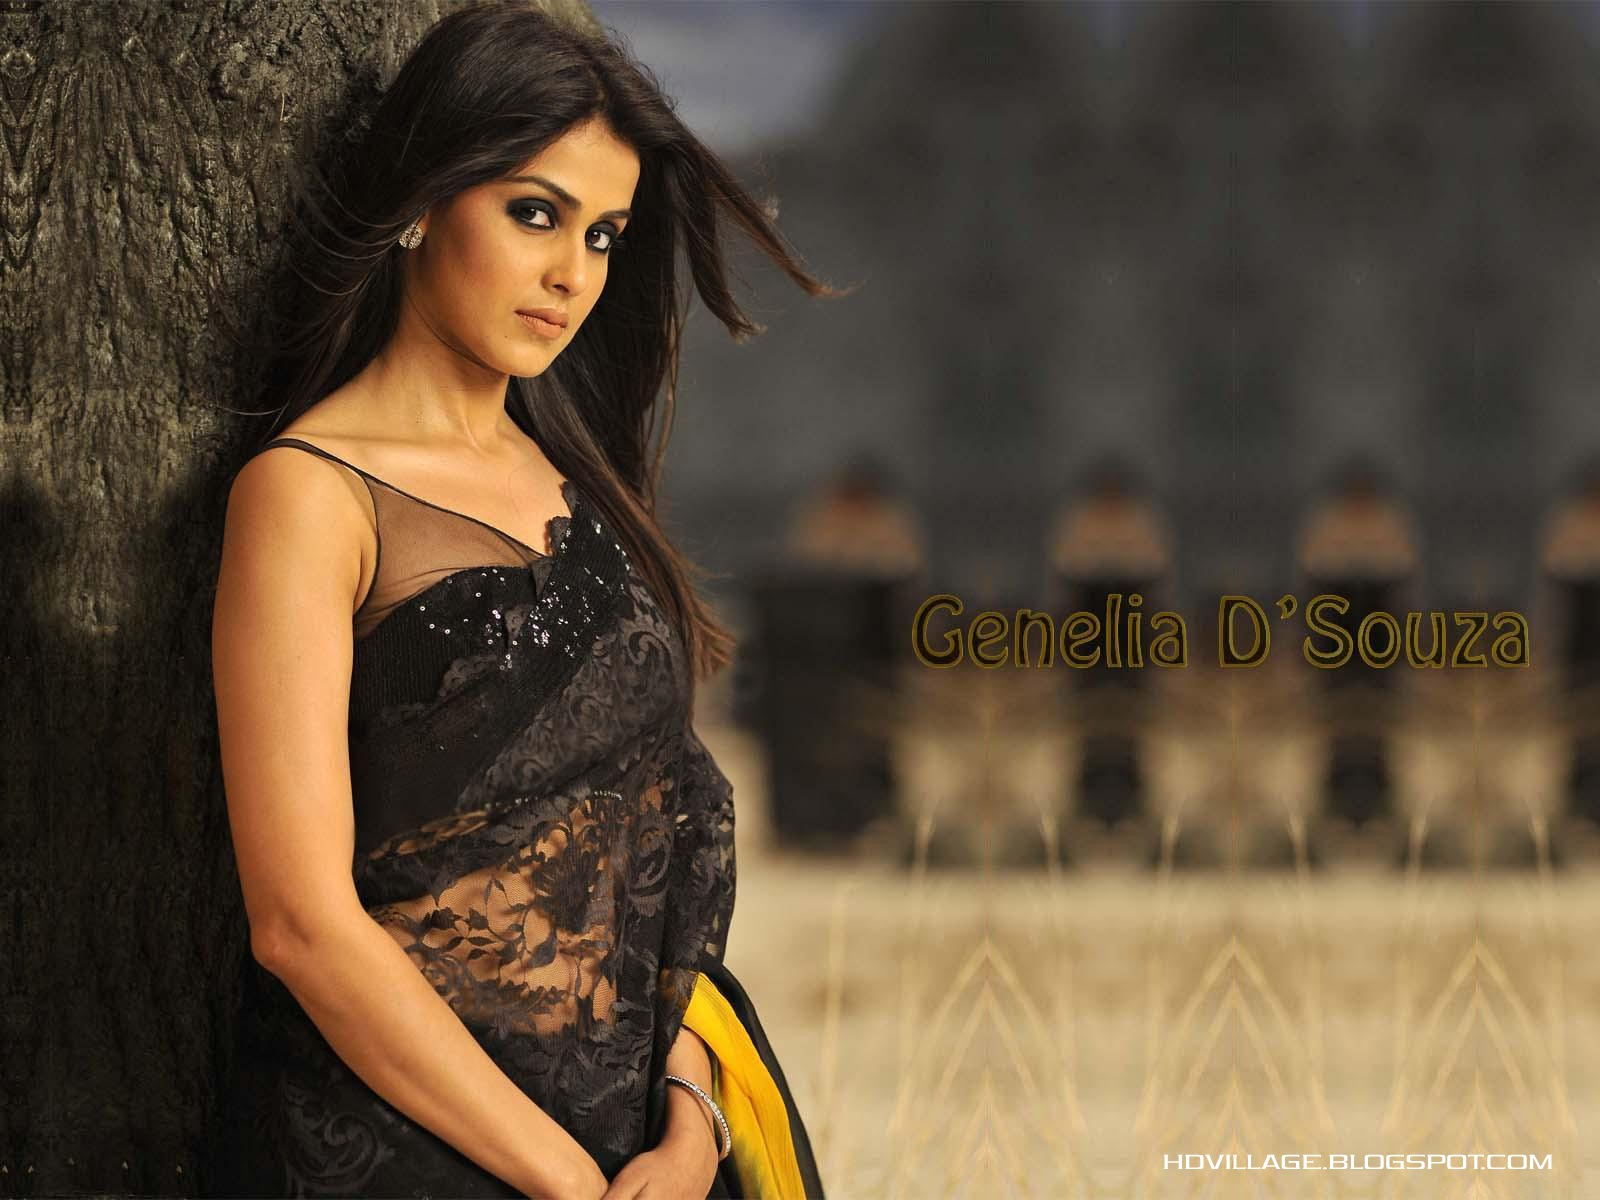 Nayanthara Hd Images 25 Cute Pictures: Genelia D Souza Wallpapers 30 HD Pics